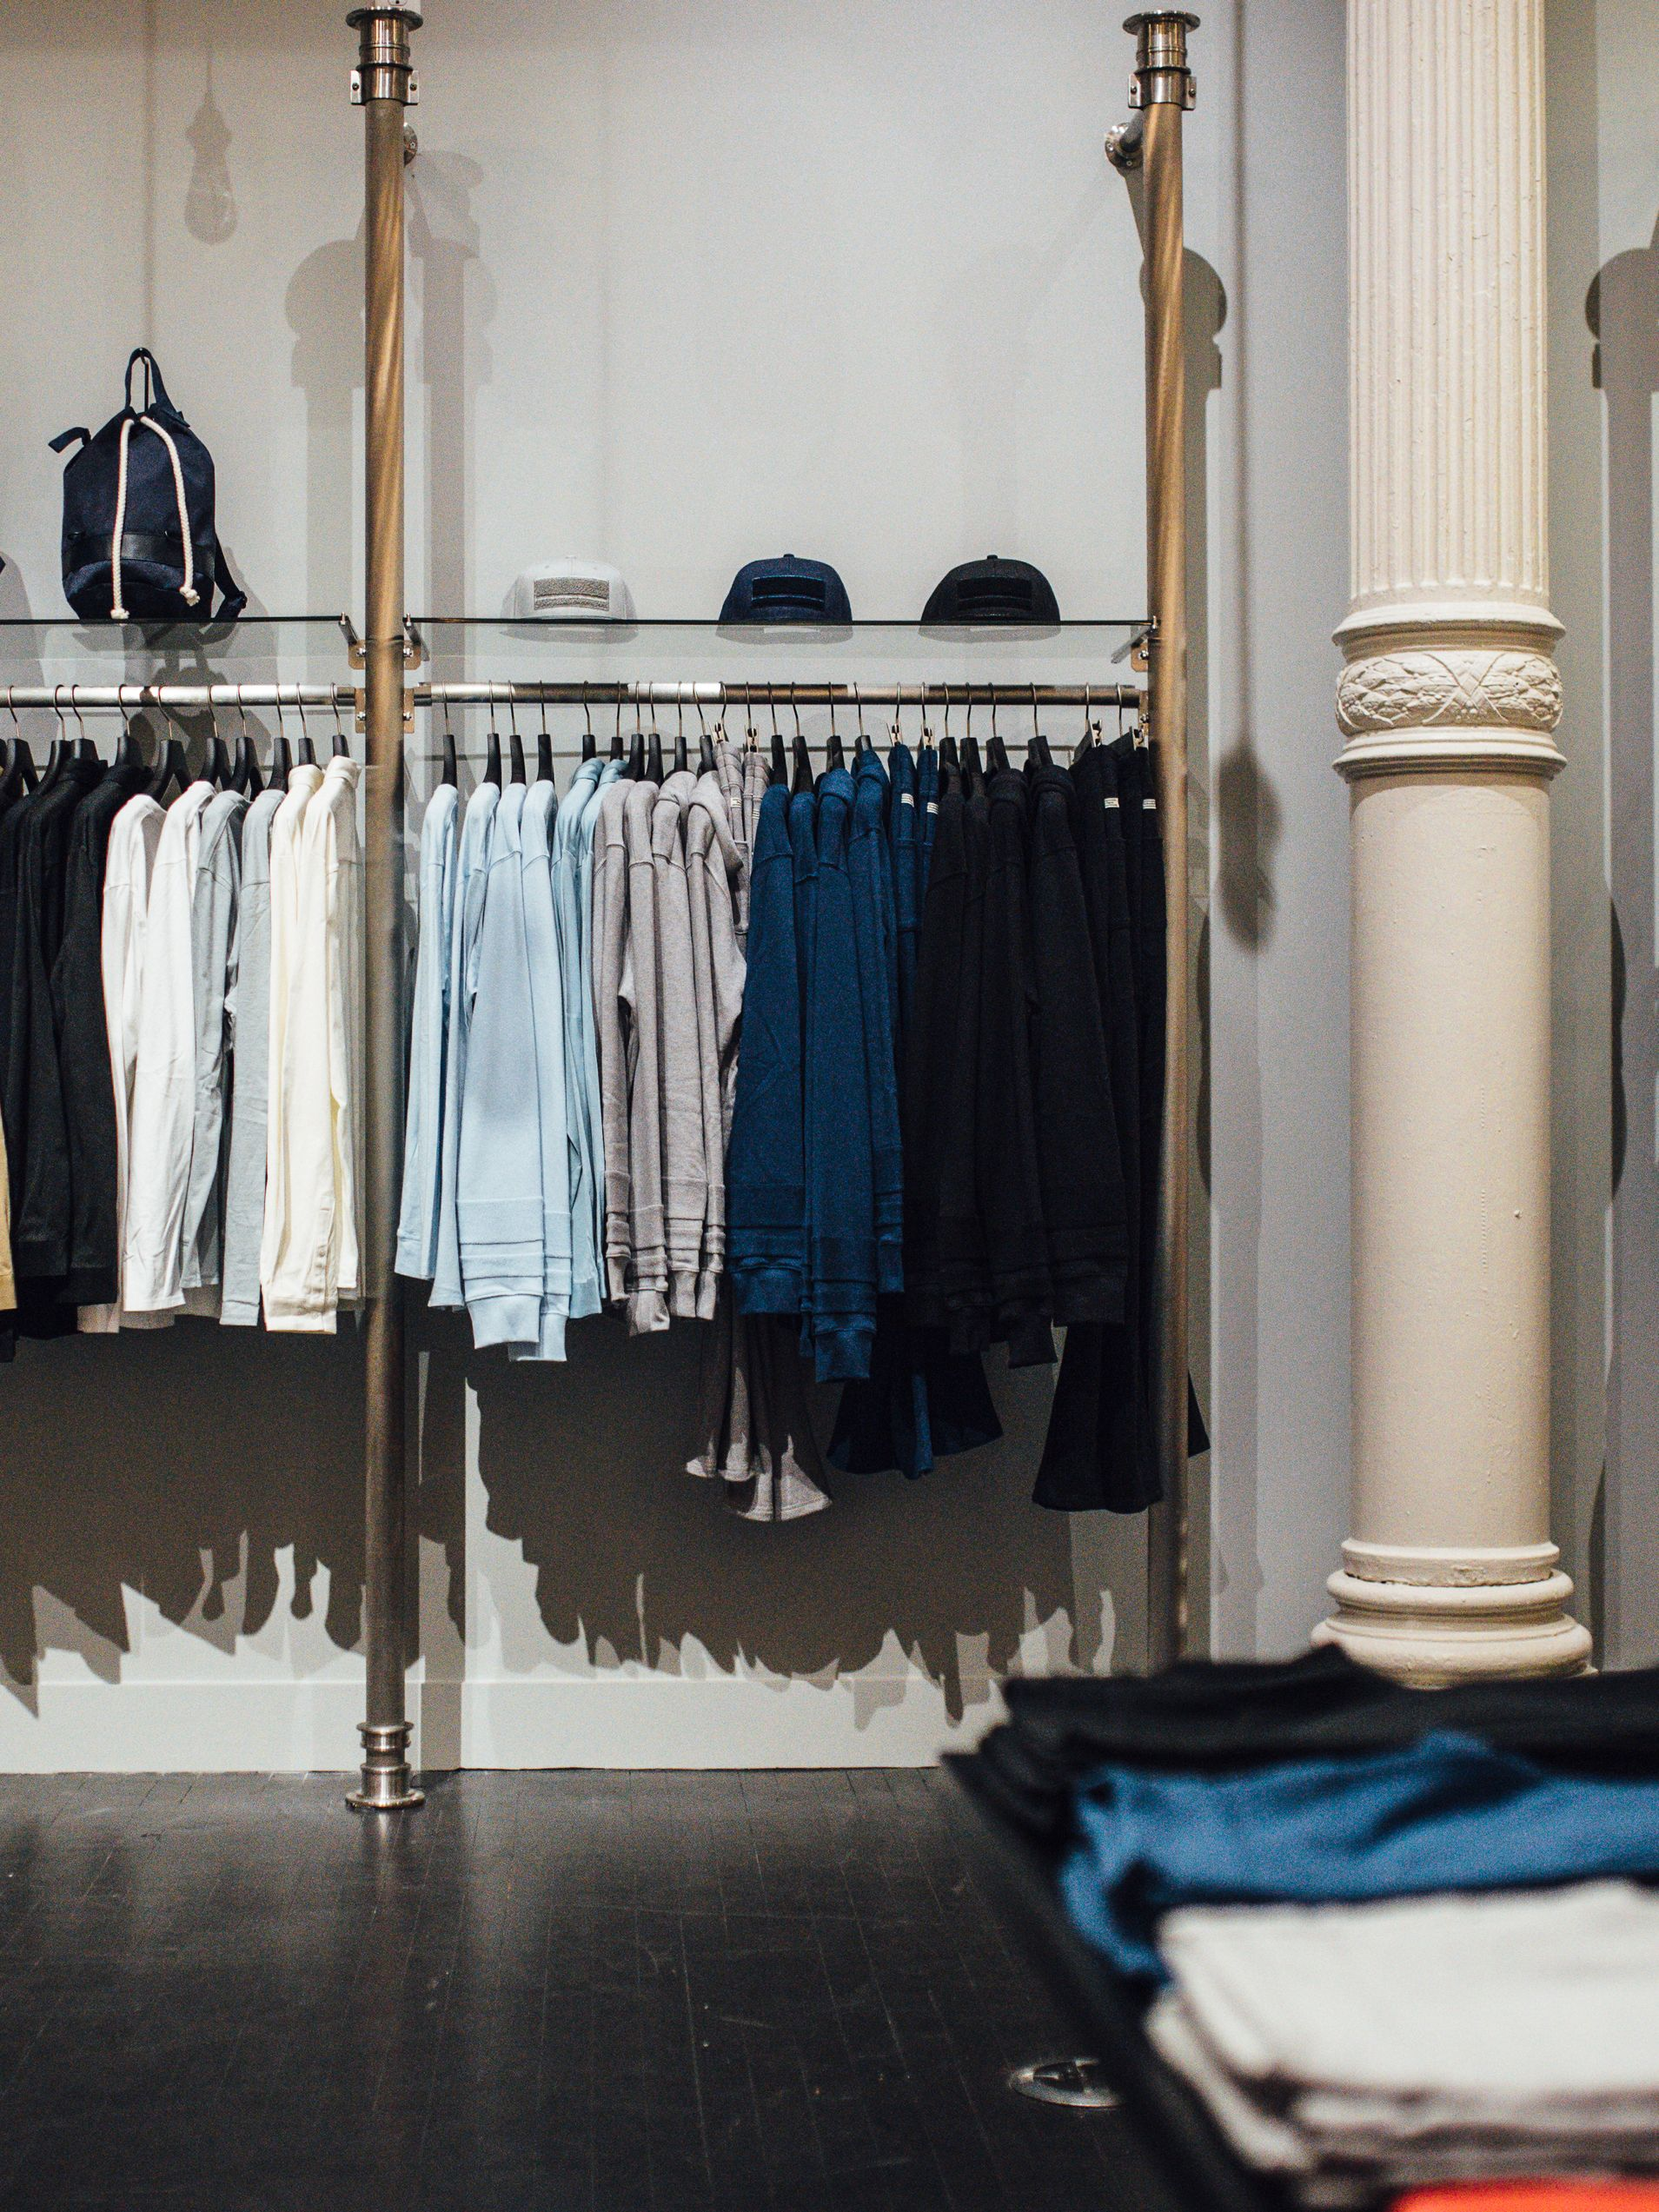 Inside the New York pop-up store